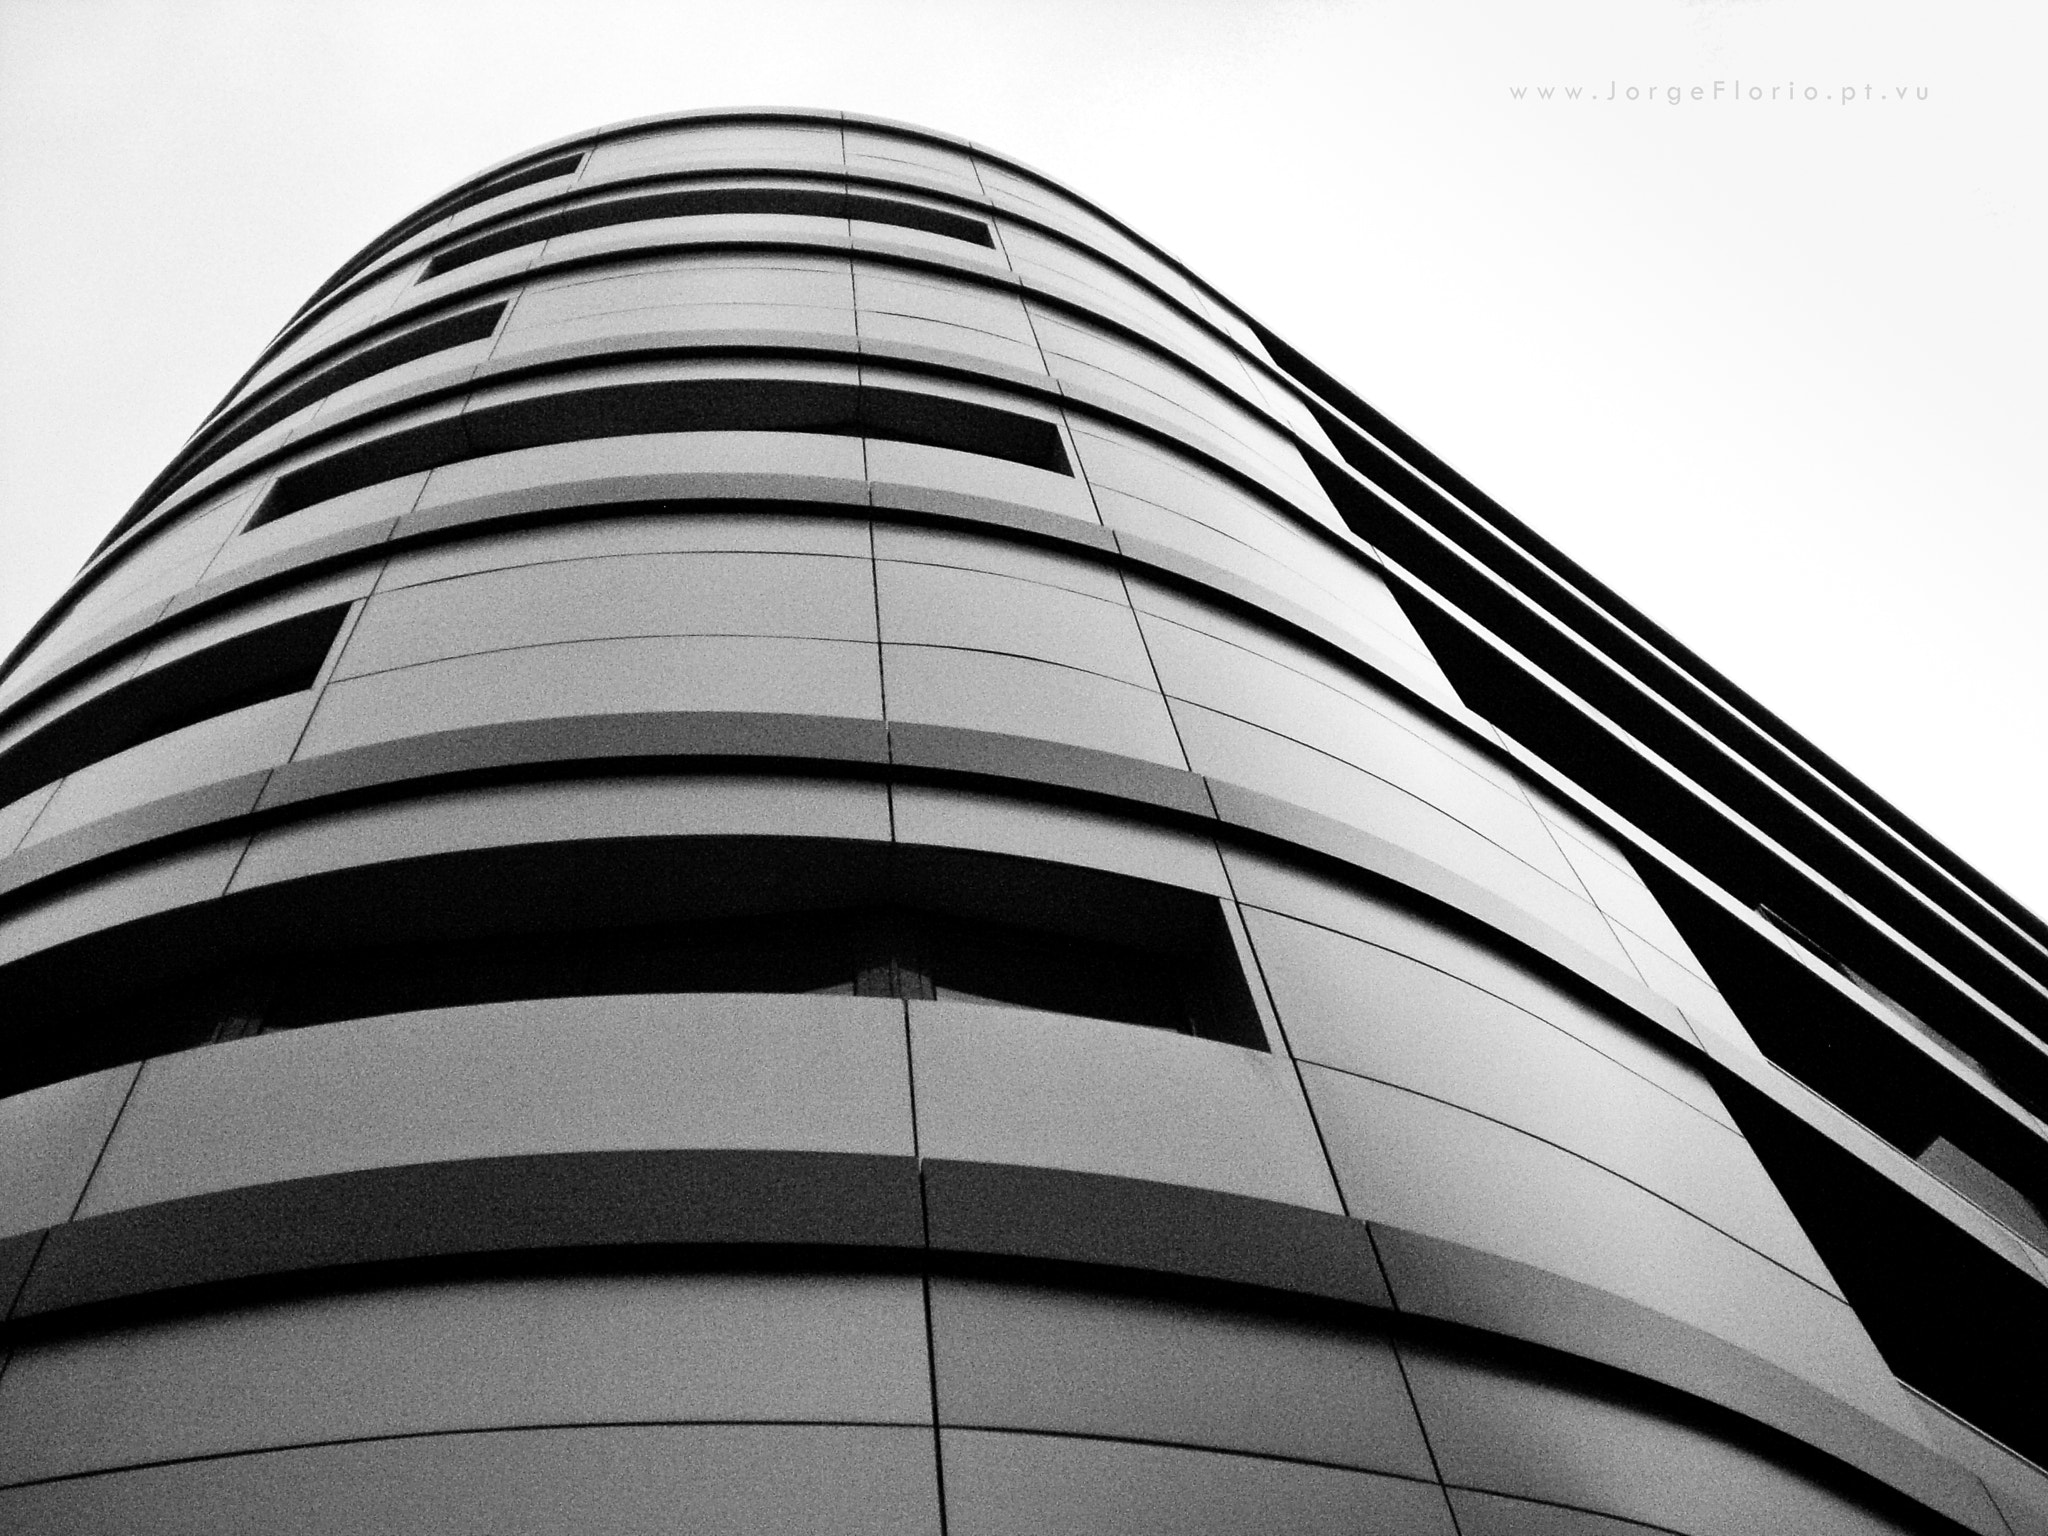 Photograph Curved Lines by Jorge Flório on 500px